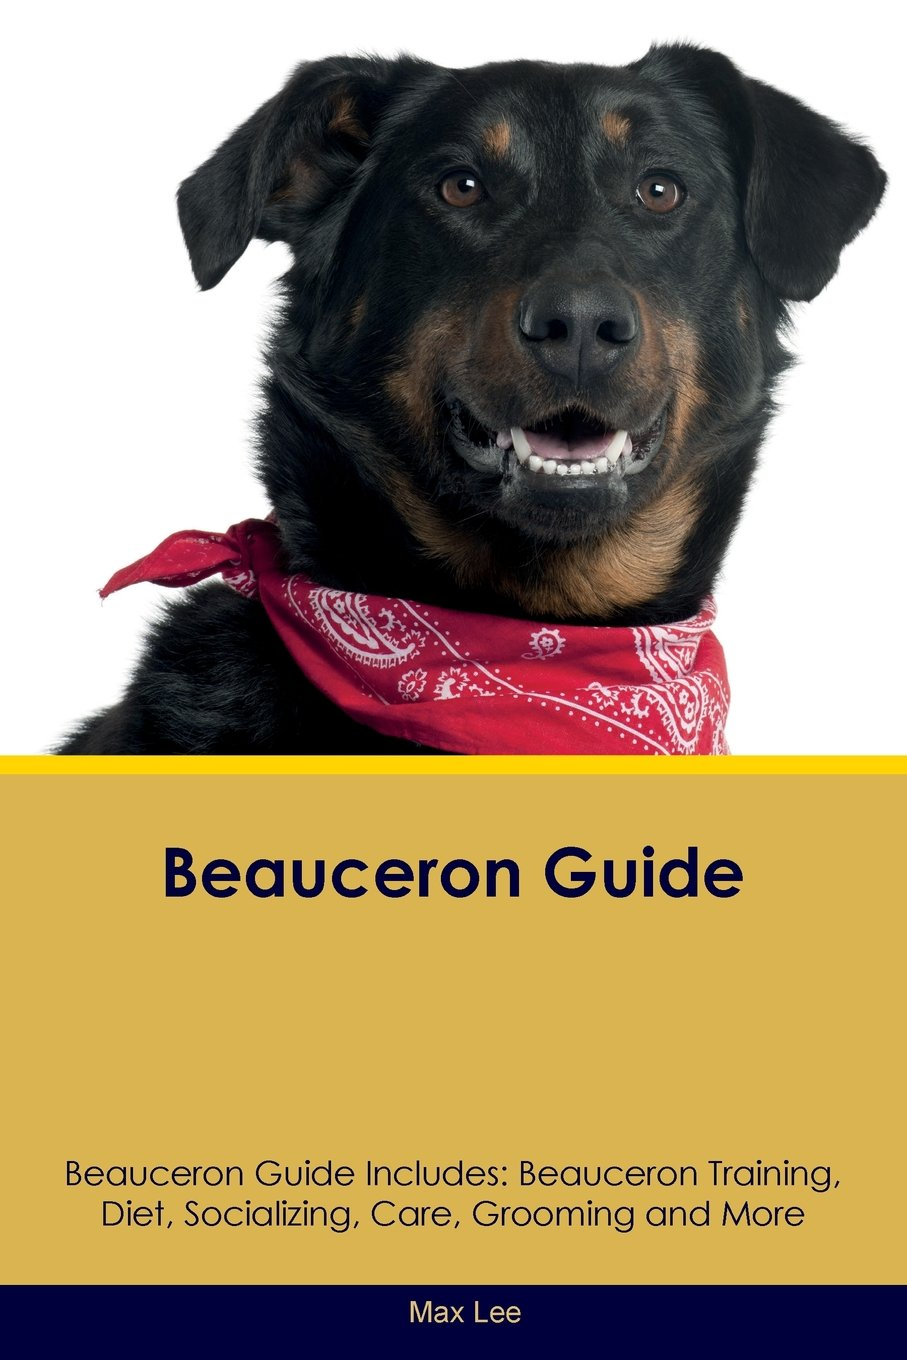 Beauceron Guide Beauceron Guide Includes: Beauceron Training, Diet, Socializing, Care, Grooming, Breeding and More